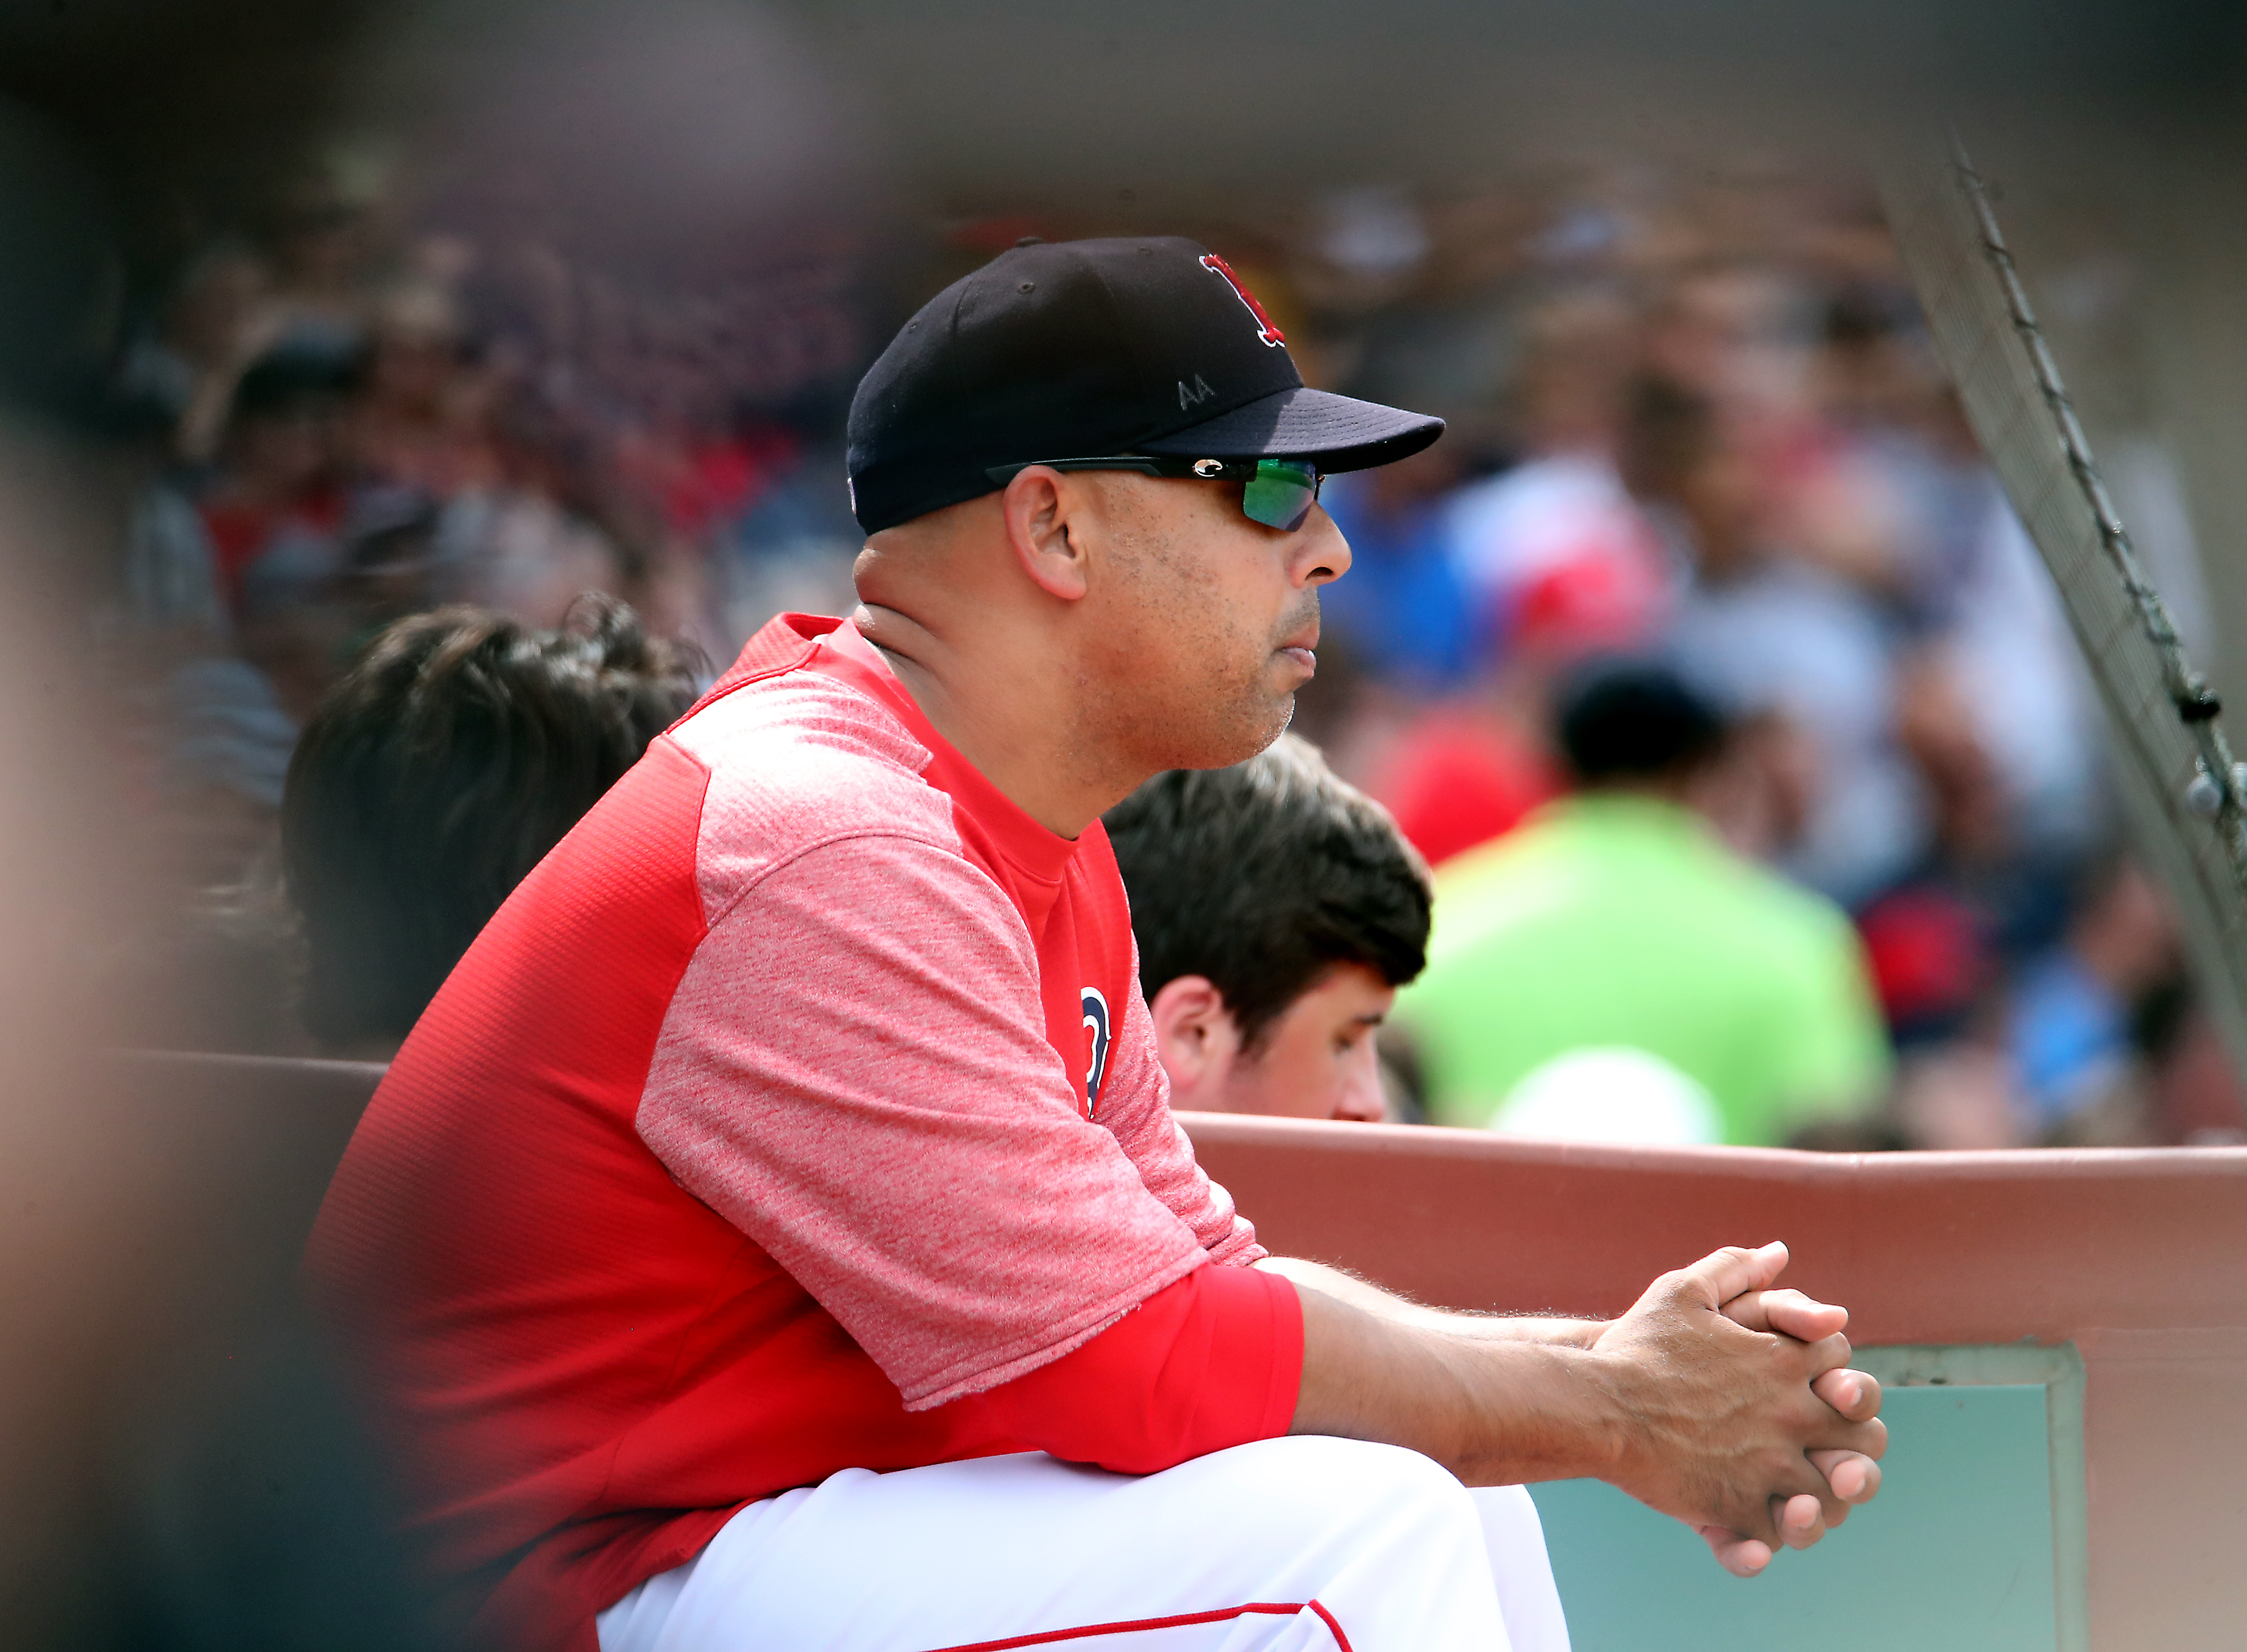 promo code 0062a 8d4ec Grieving Alex Cora found solace fleeting in Red Sox shutout win